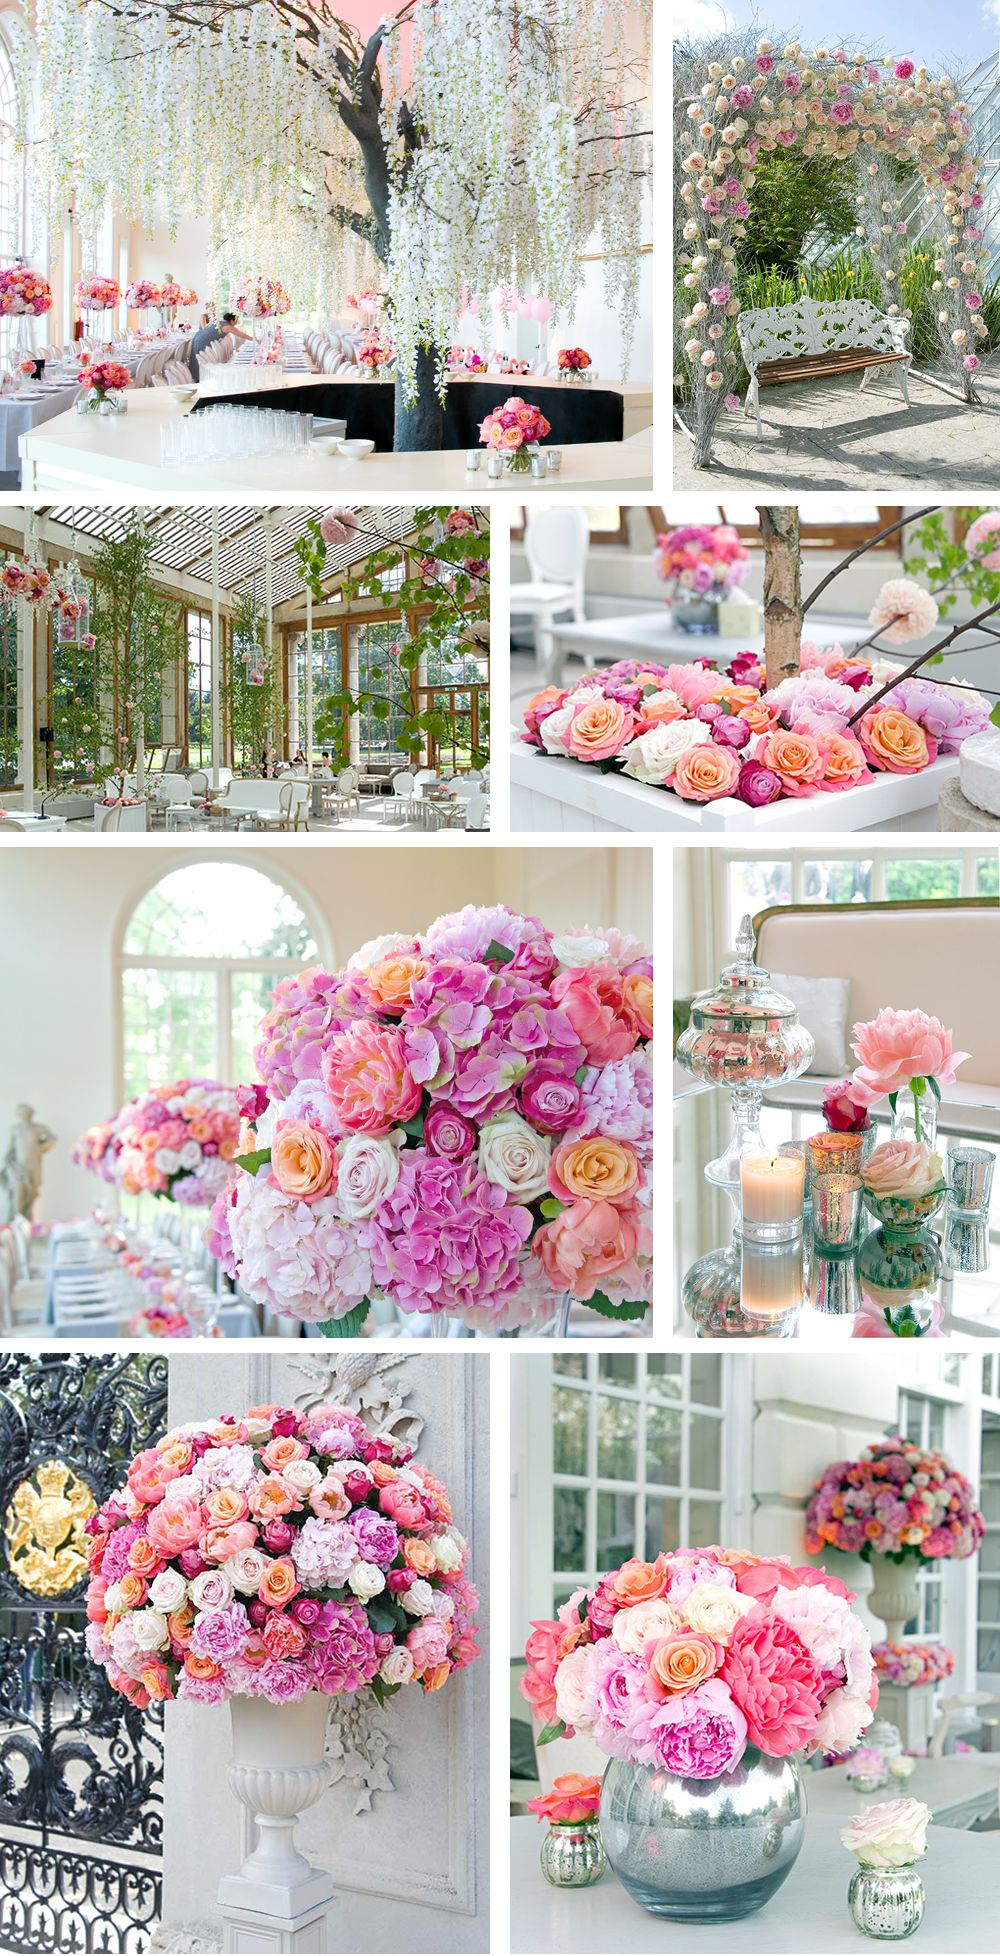 Dream Weddings A Mass Of Flowers In Urns Tall Glass Vases With